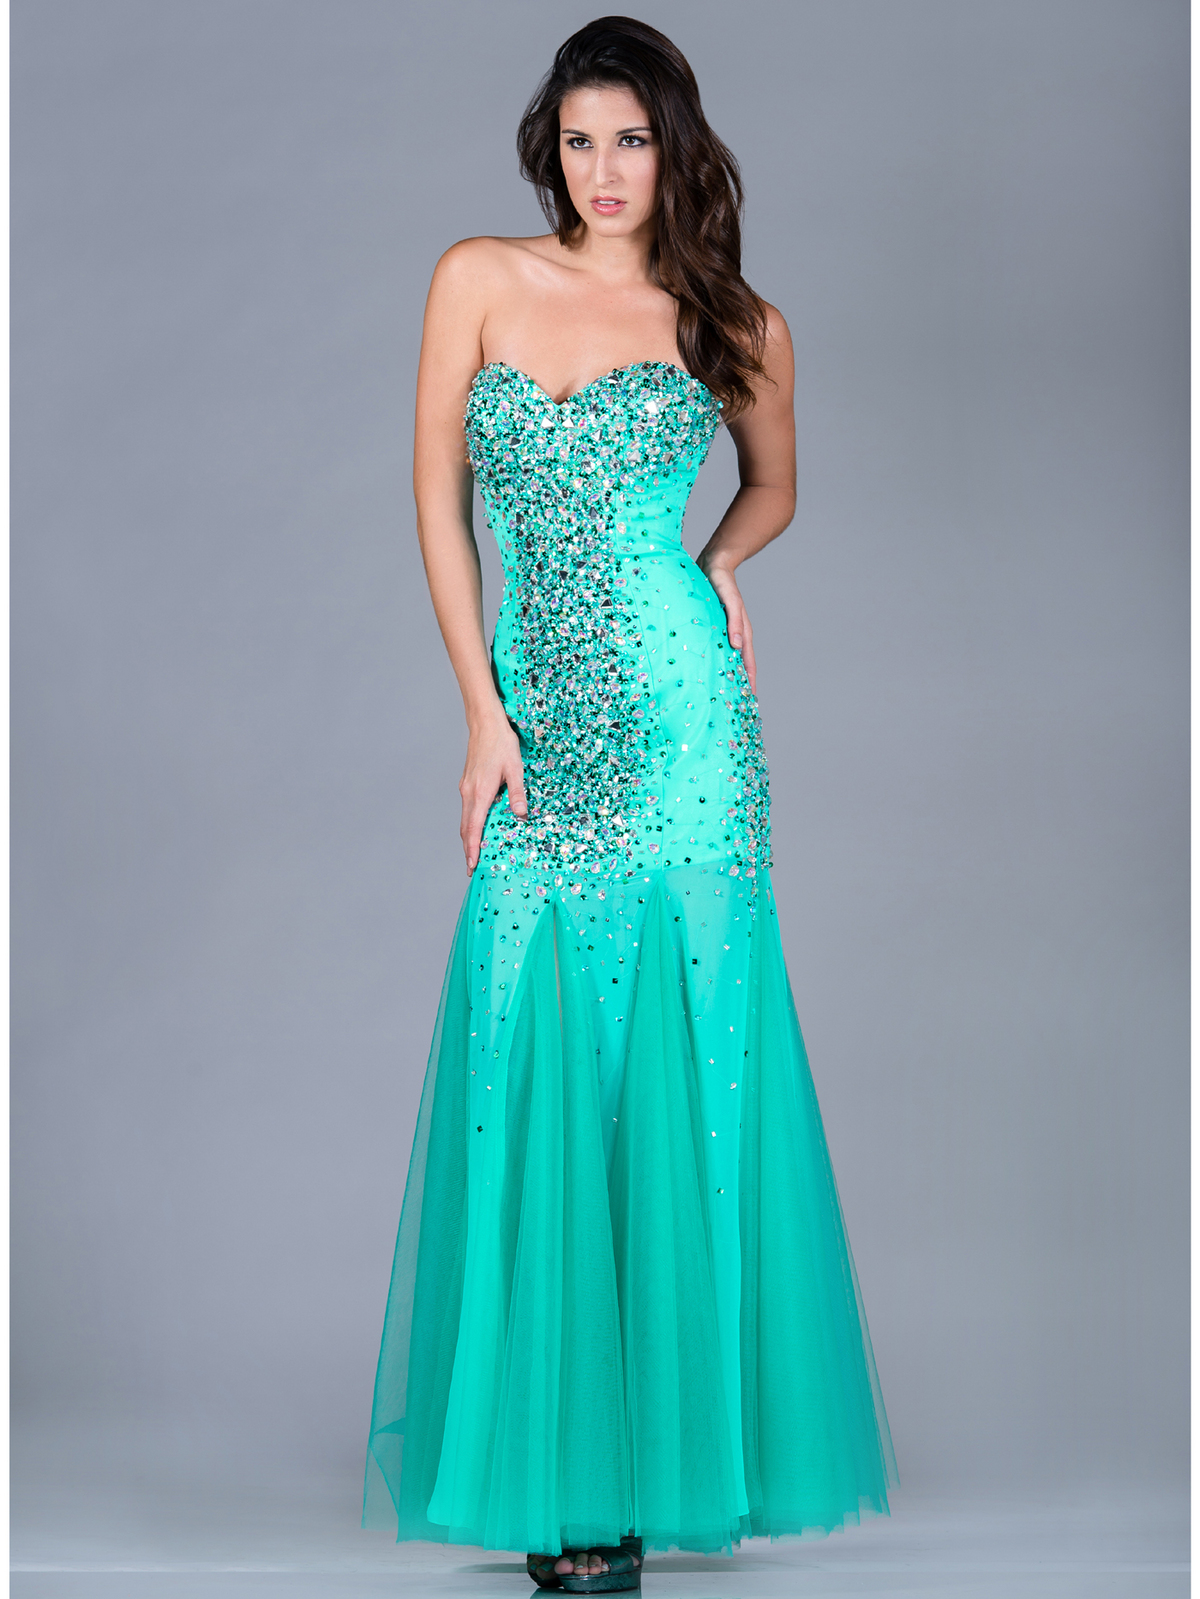 Excellent Jade Prom Dress Pictures Inspiration Wedding Ideas